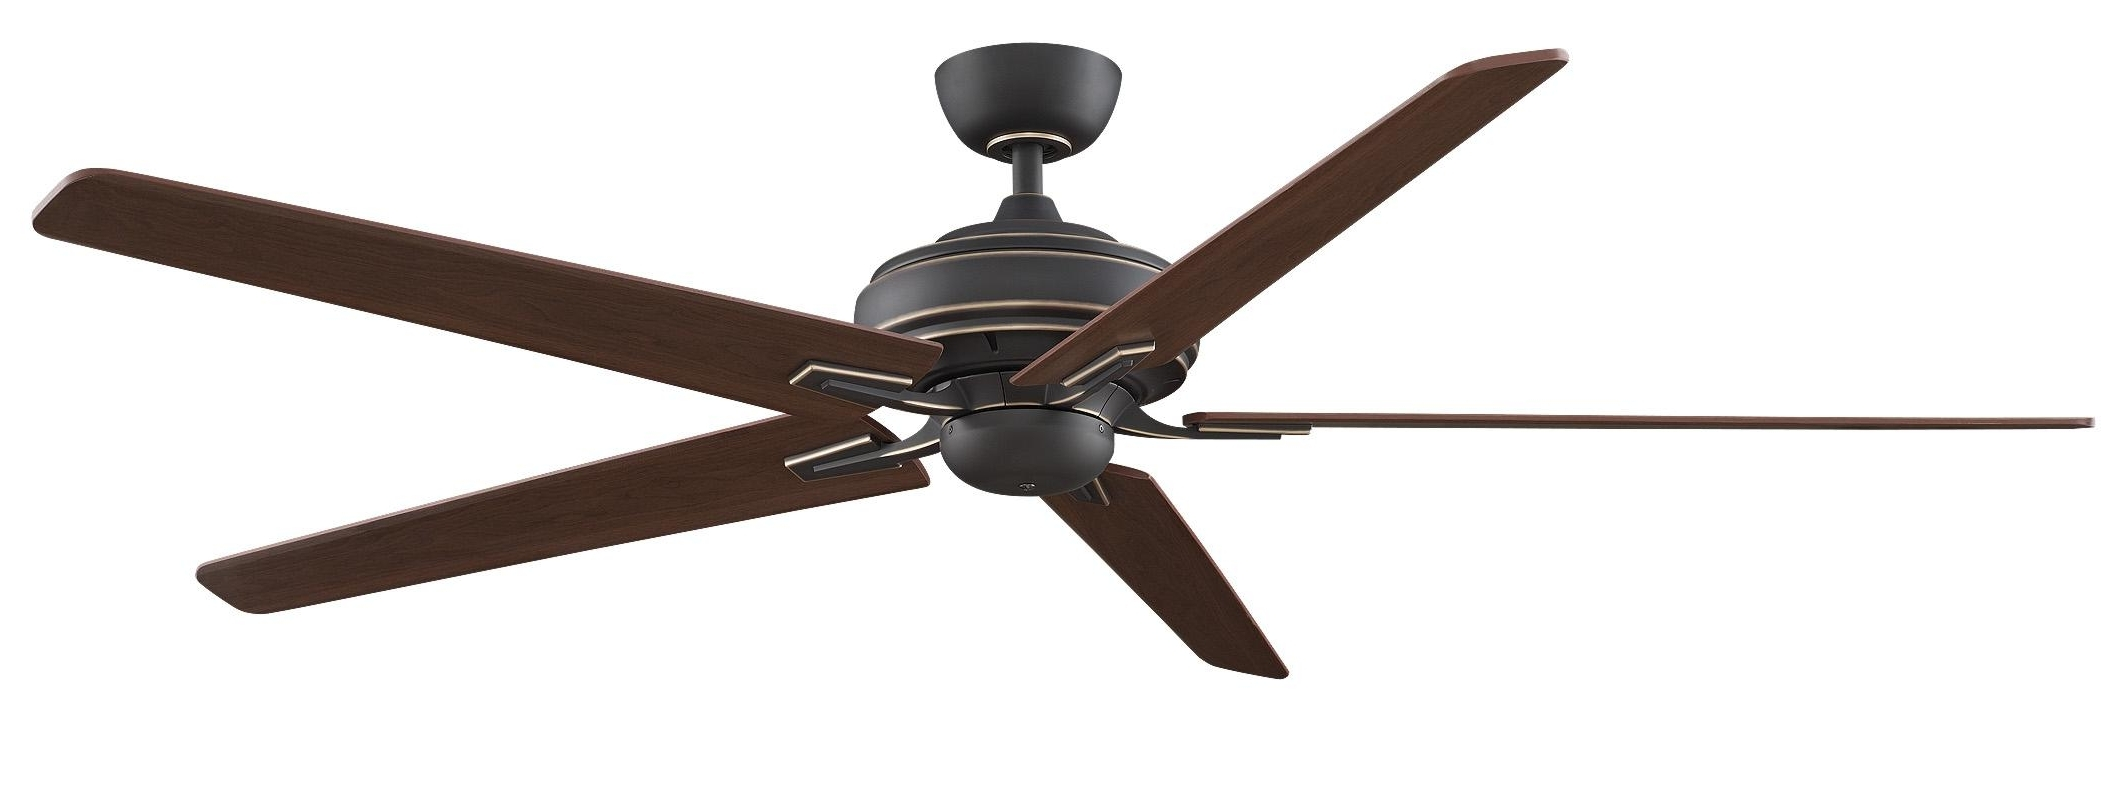 Well Liked 72 Inch Outdoor Ceiling Fans With Light Throughout Inch Outdoor Ceiling Fan With 60 Ceiling Fan With Light (View 20 of 20)